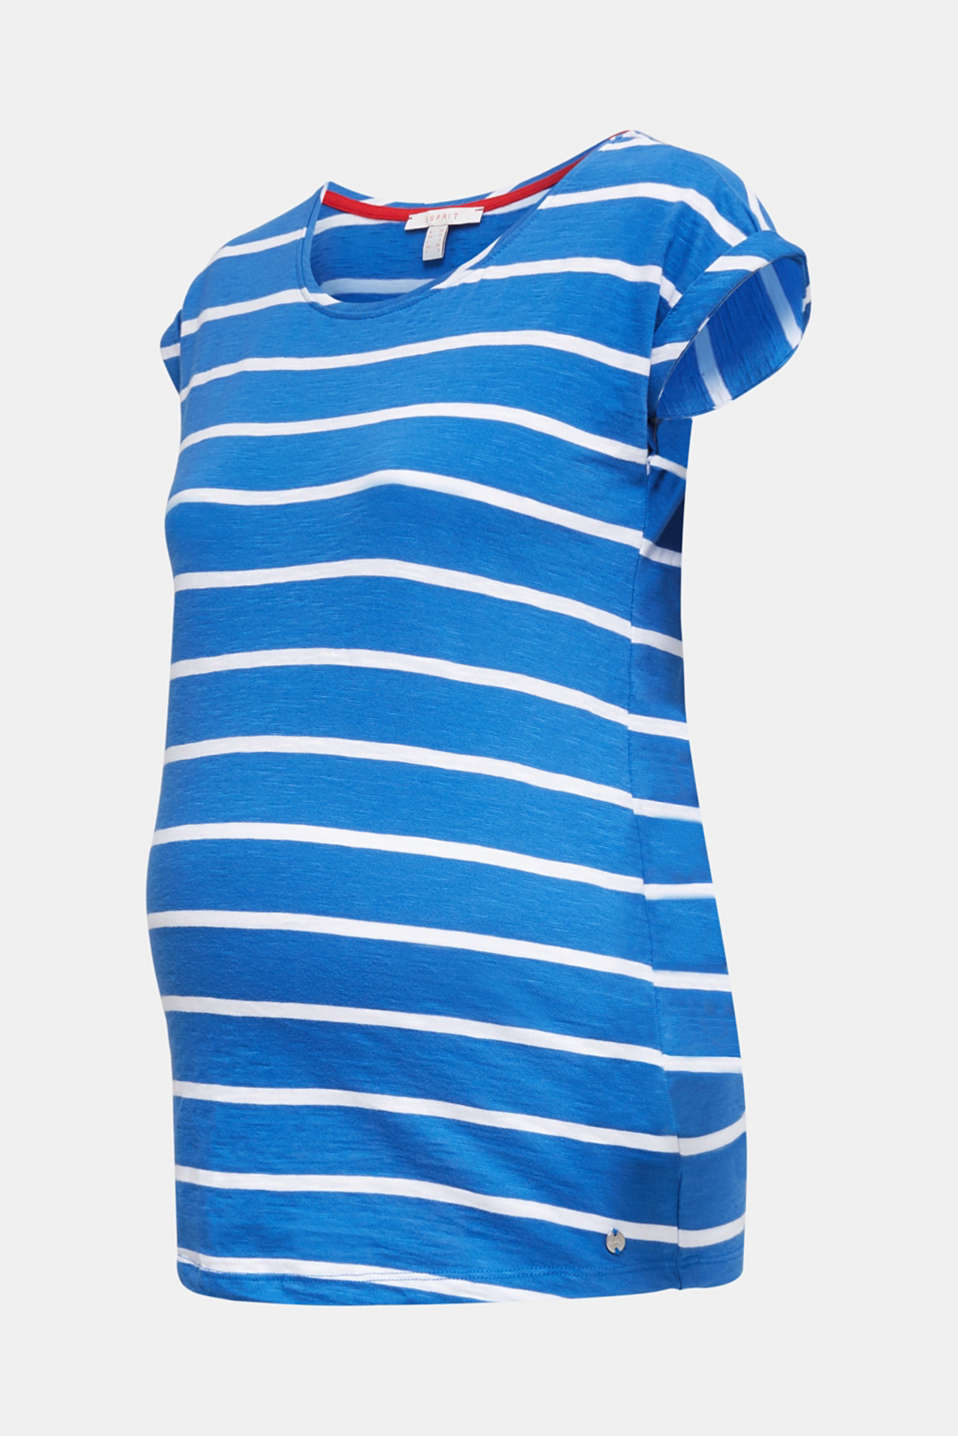 T-shirt with stripes, 100% cotton, LCGREY BLUE, detail image number 6